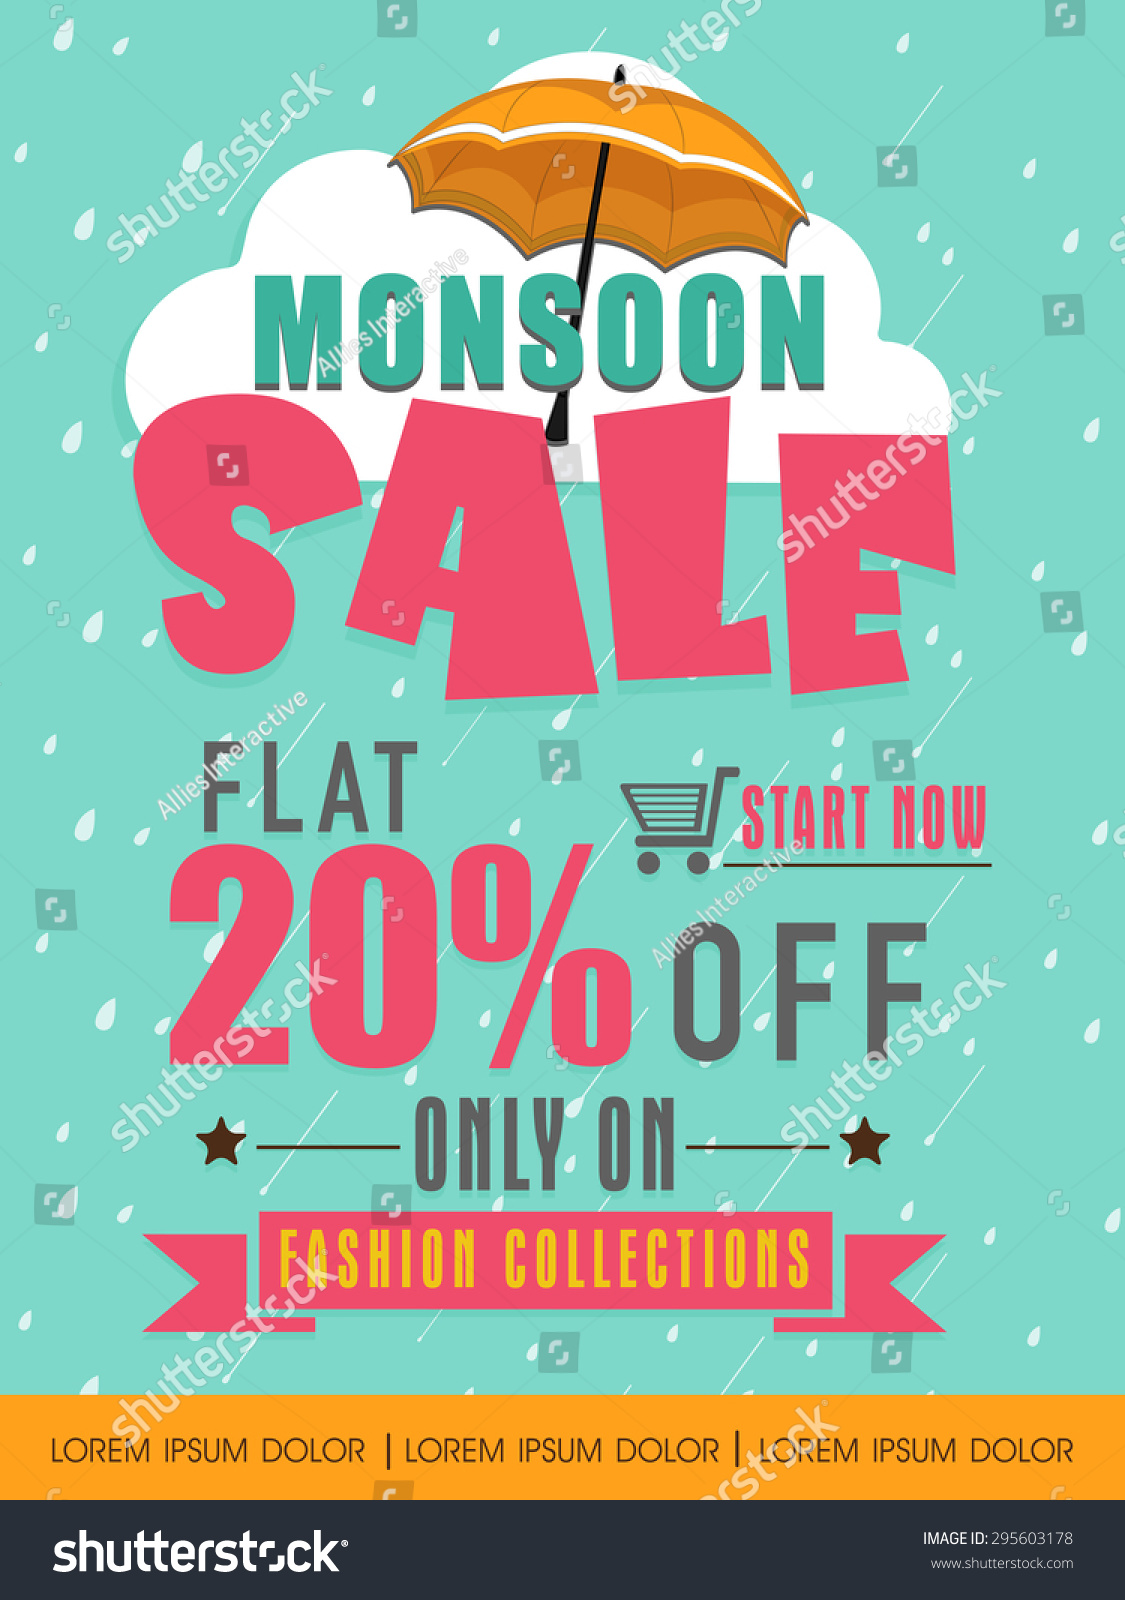 template best fashion flyer psd templates designs fashion monsoon flyer template 5 >>